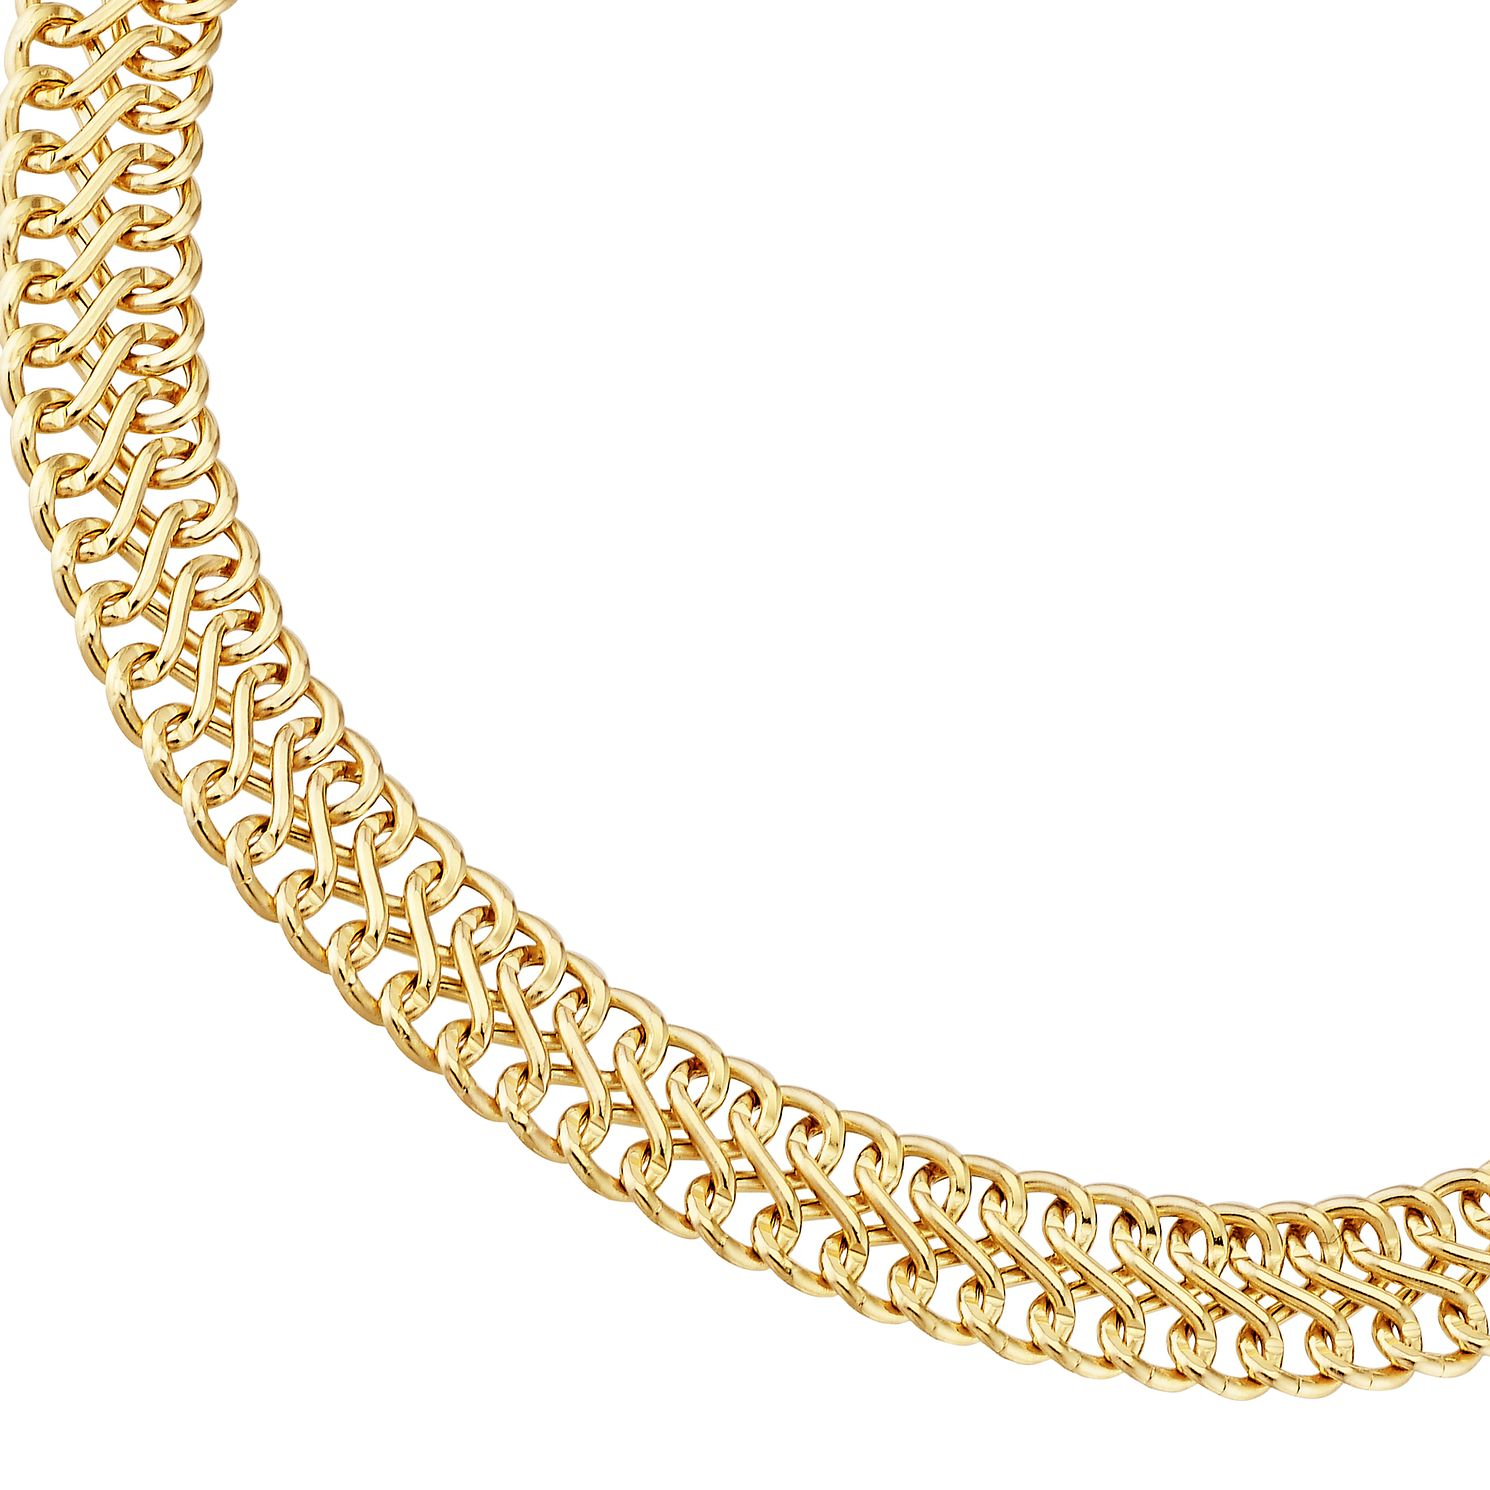 9ct Yellow Gold 7.5 inches Double Chain Bracelet - Product number 3057402